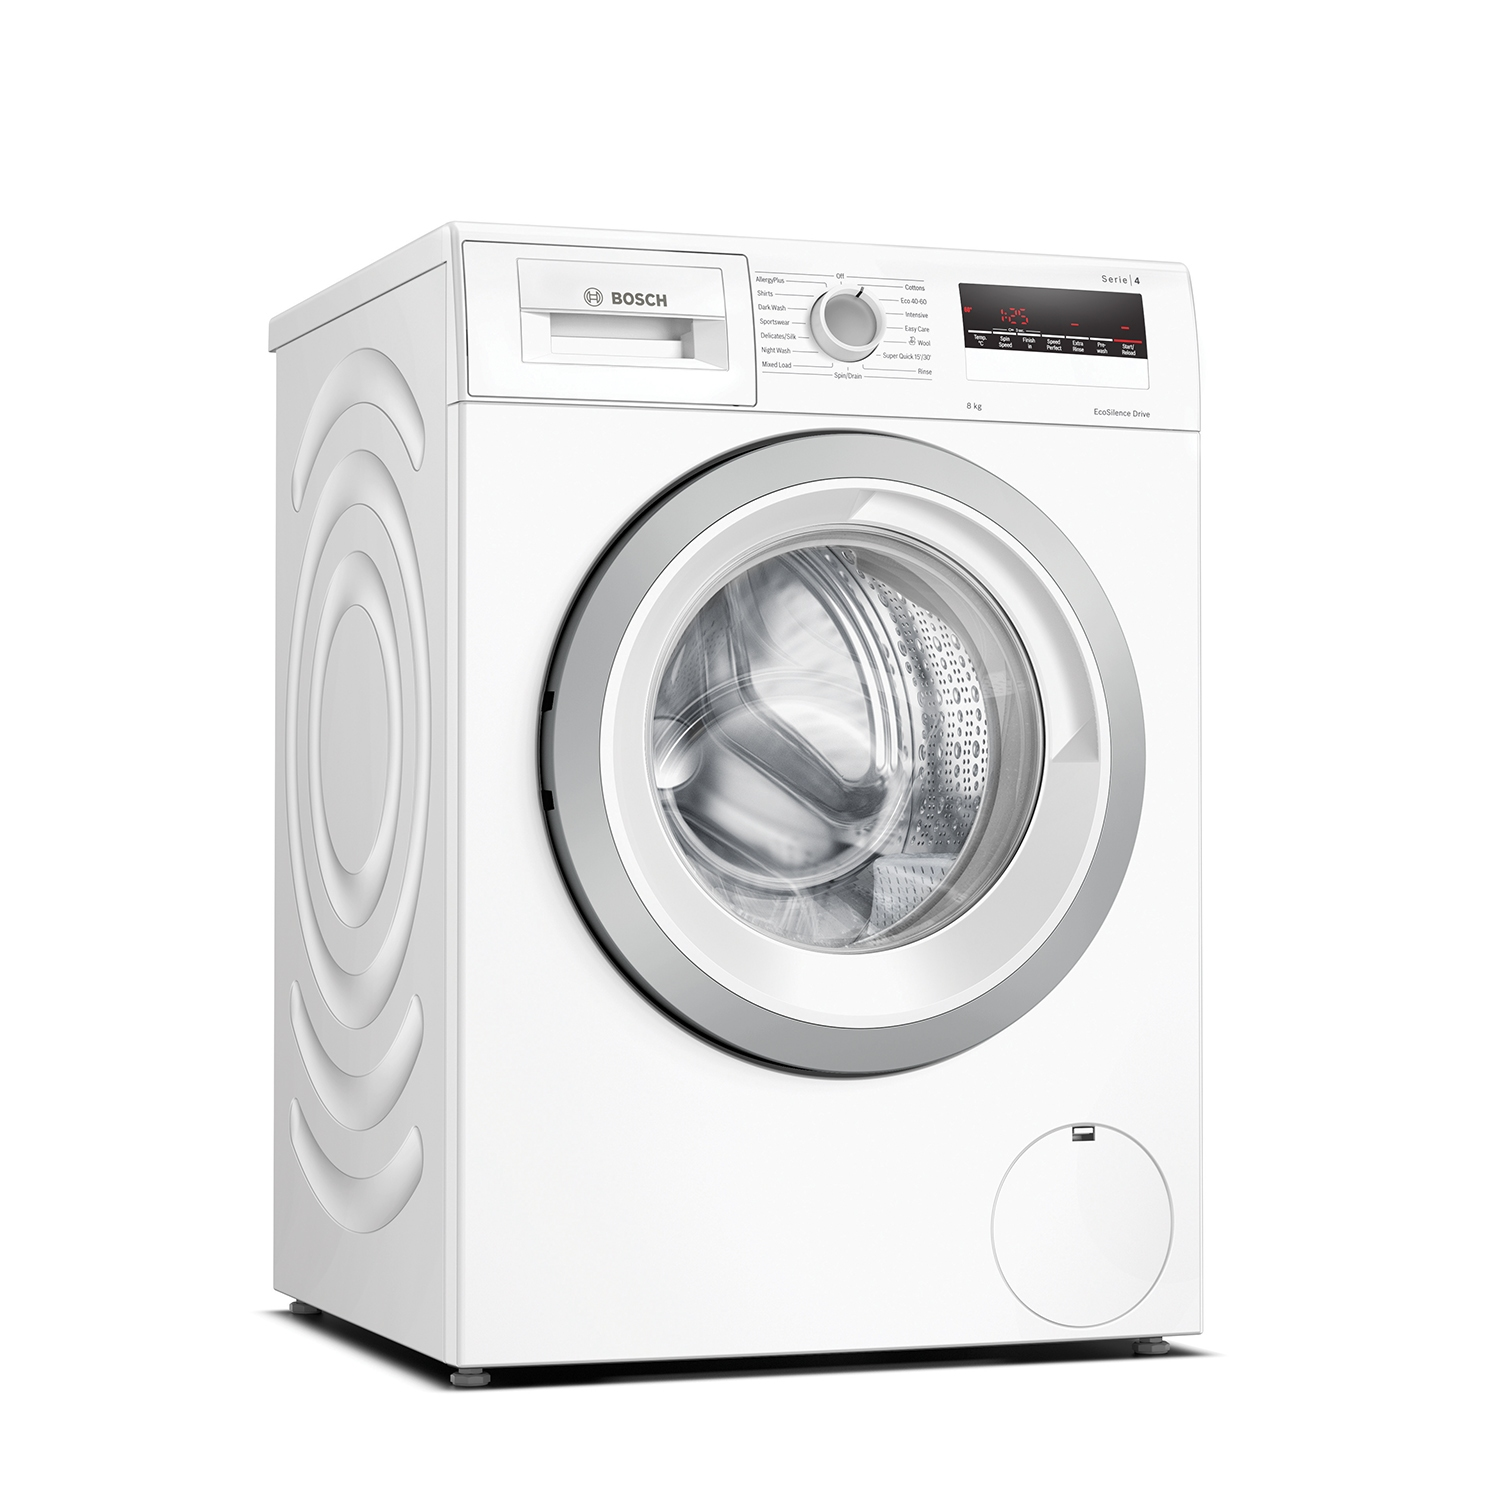 Bosch 8kg 1400 Spin Washing Machine - White - A+++ Rated - 0